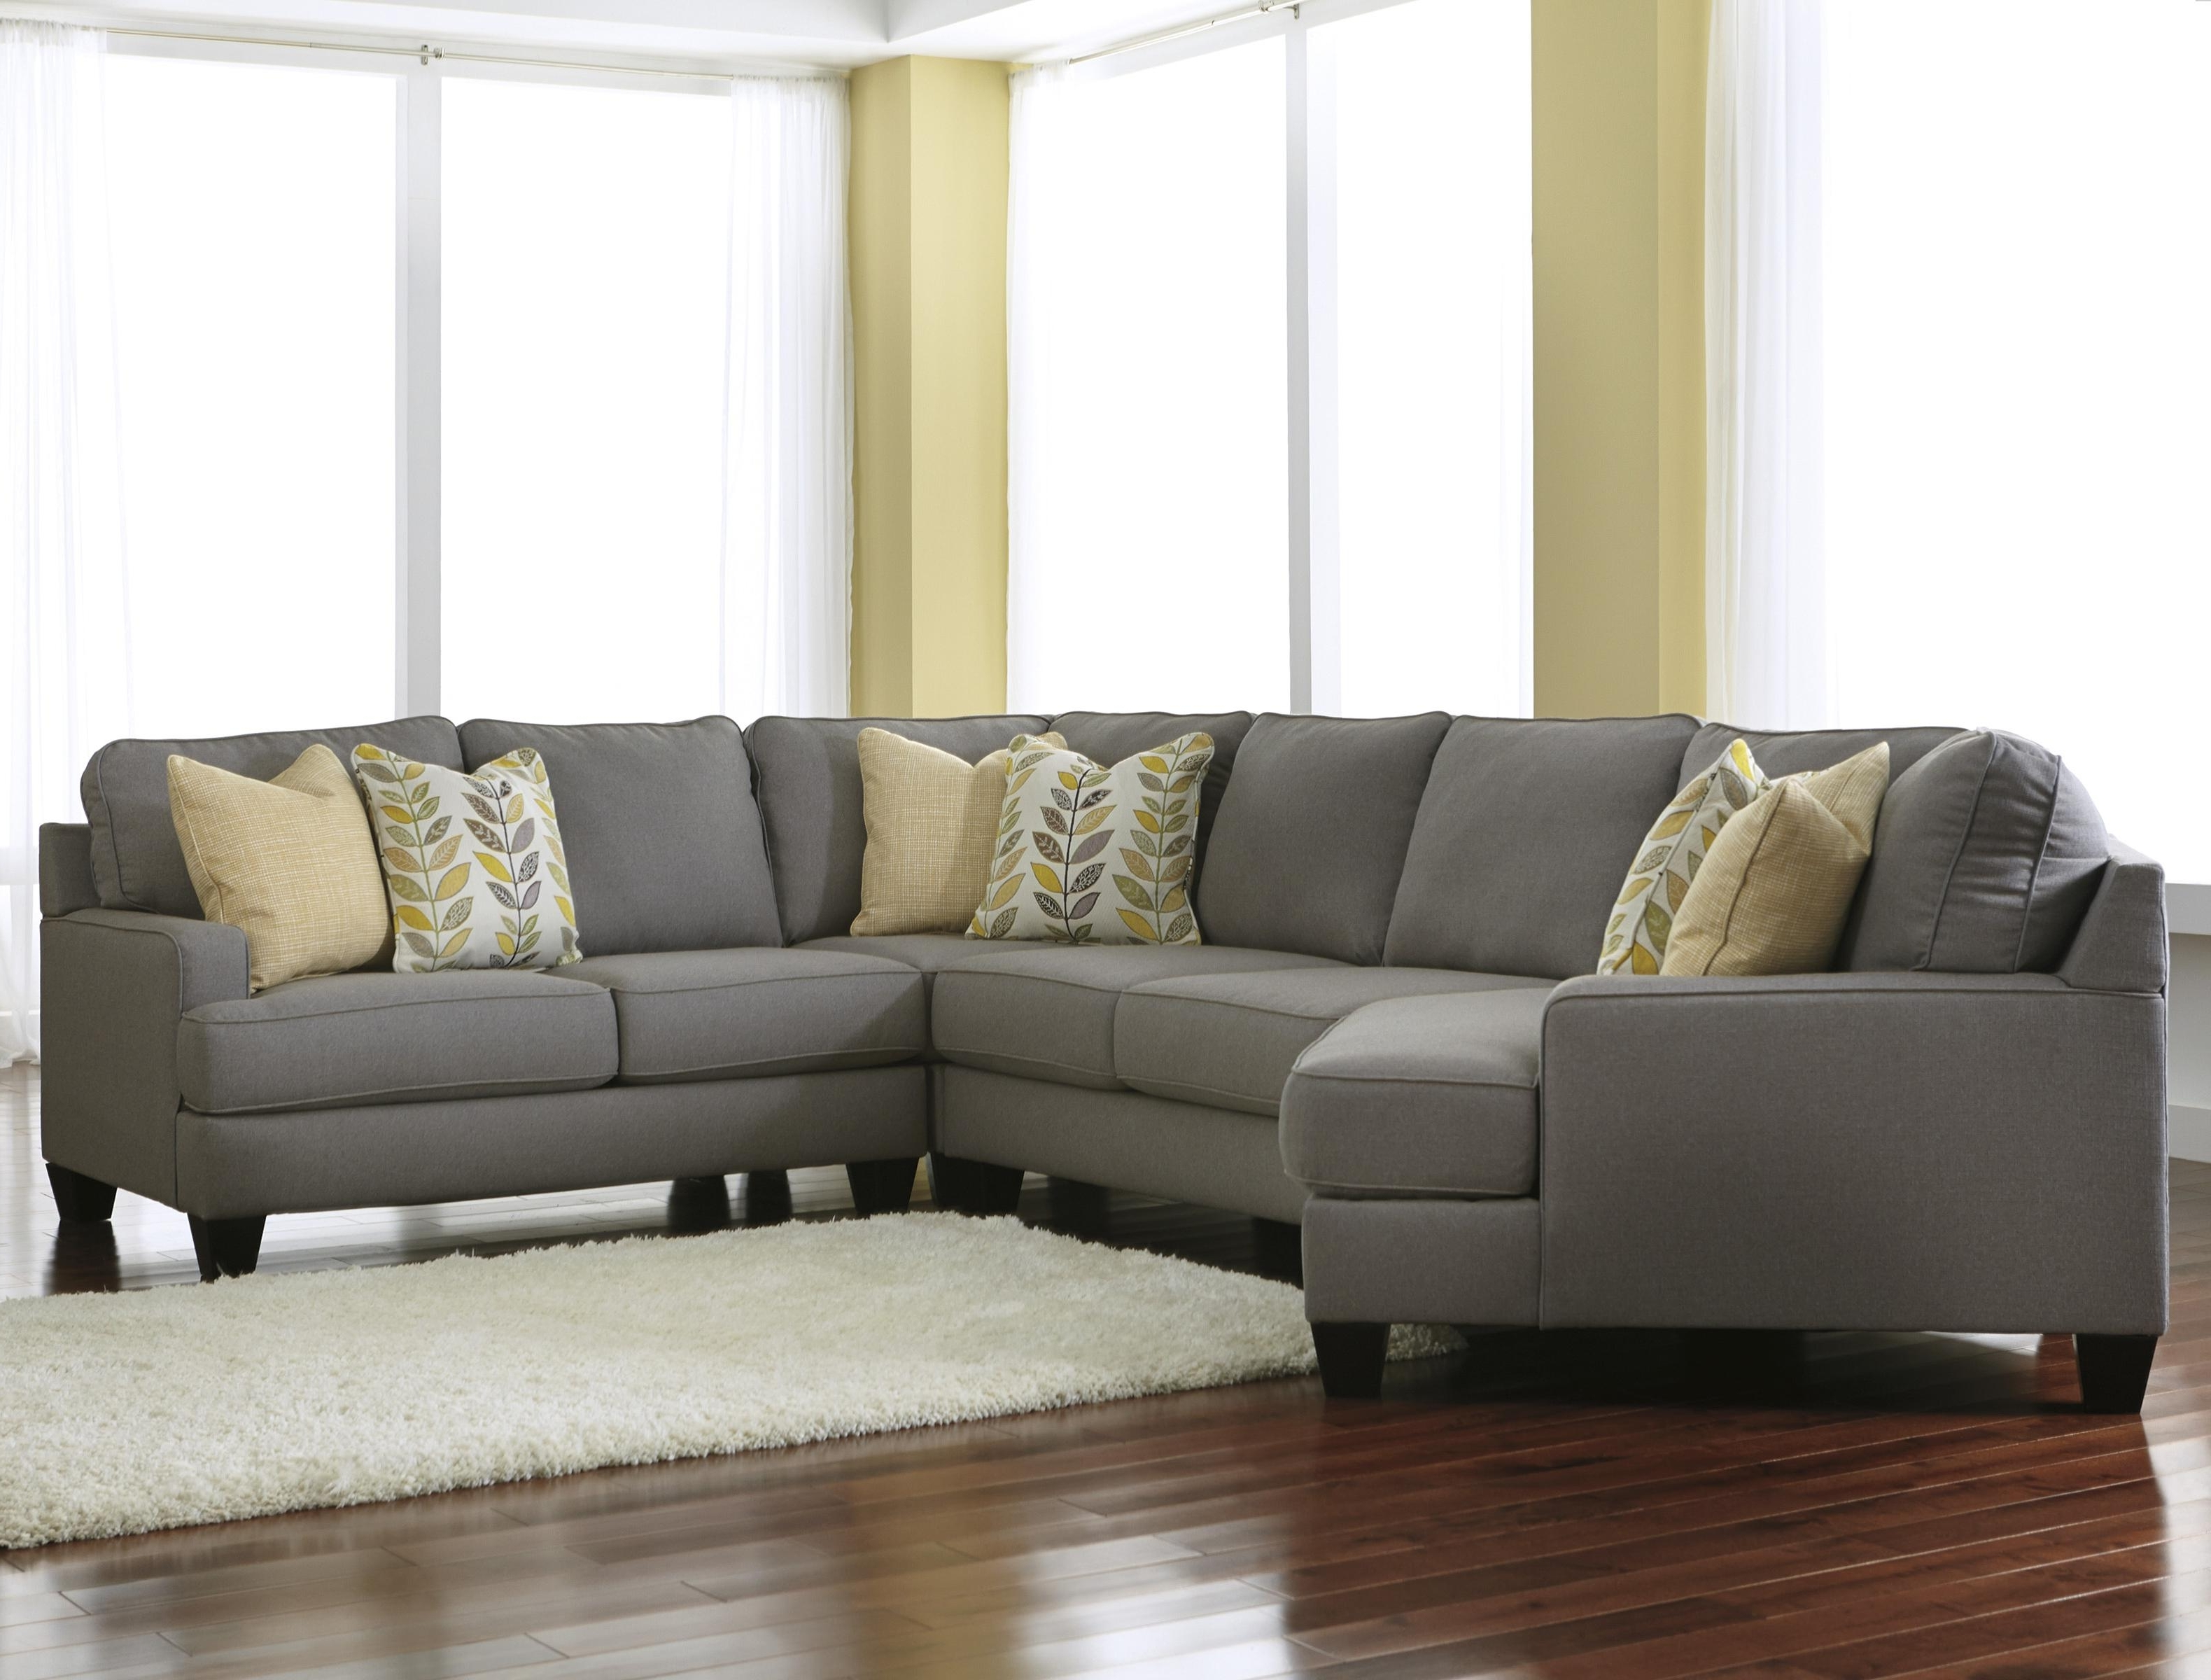 Signature Designashley Chamberly – Alloy Modern 4 Piece Intended For Most Recent Cuddler Sectional Sofas (View 8 of 15)